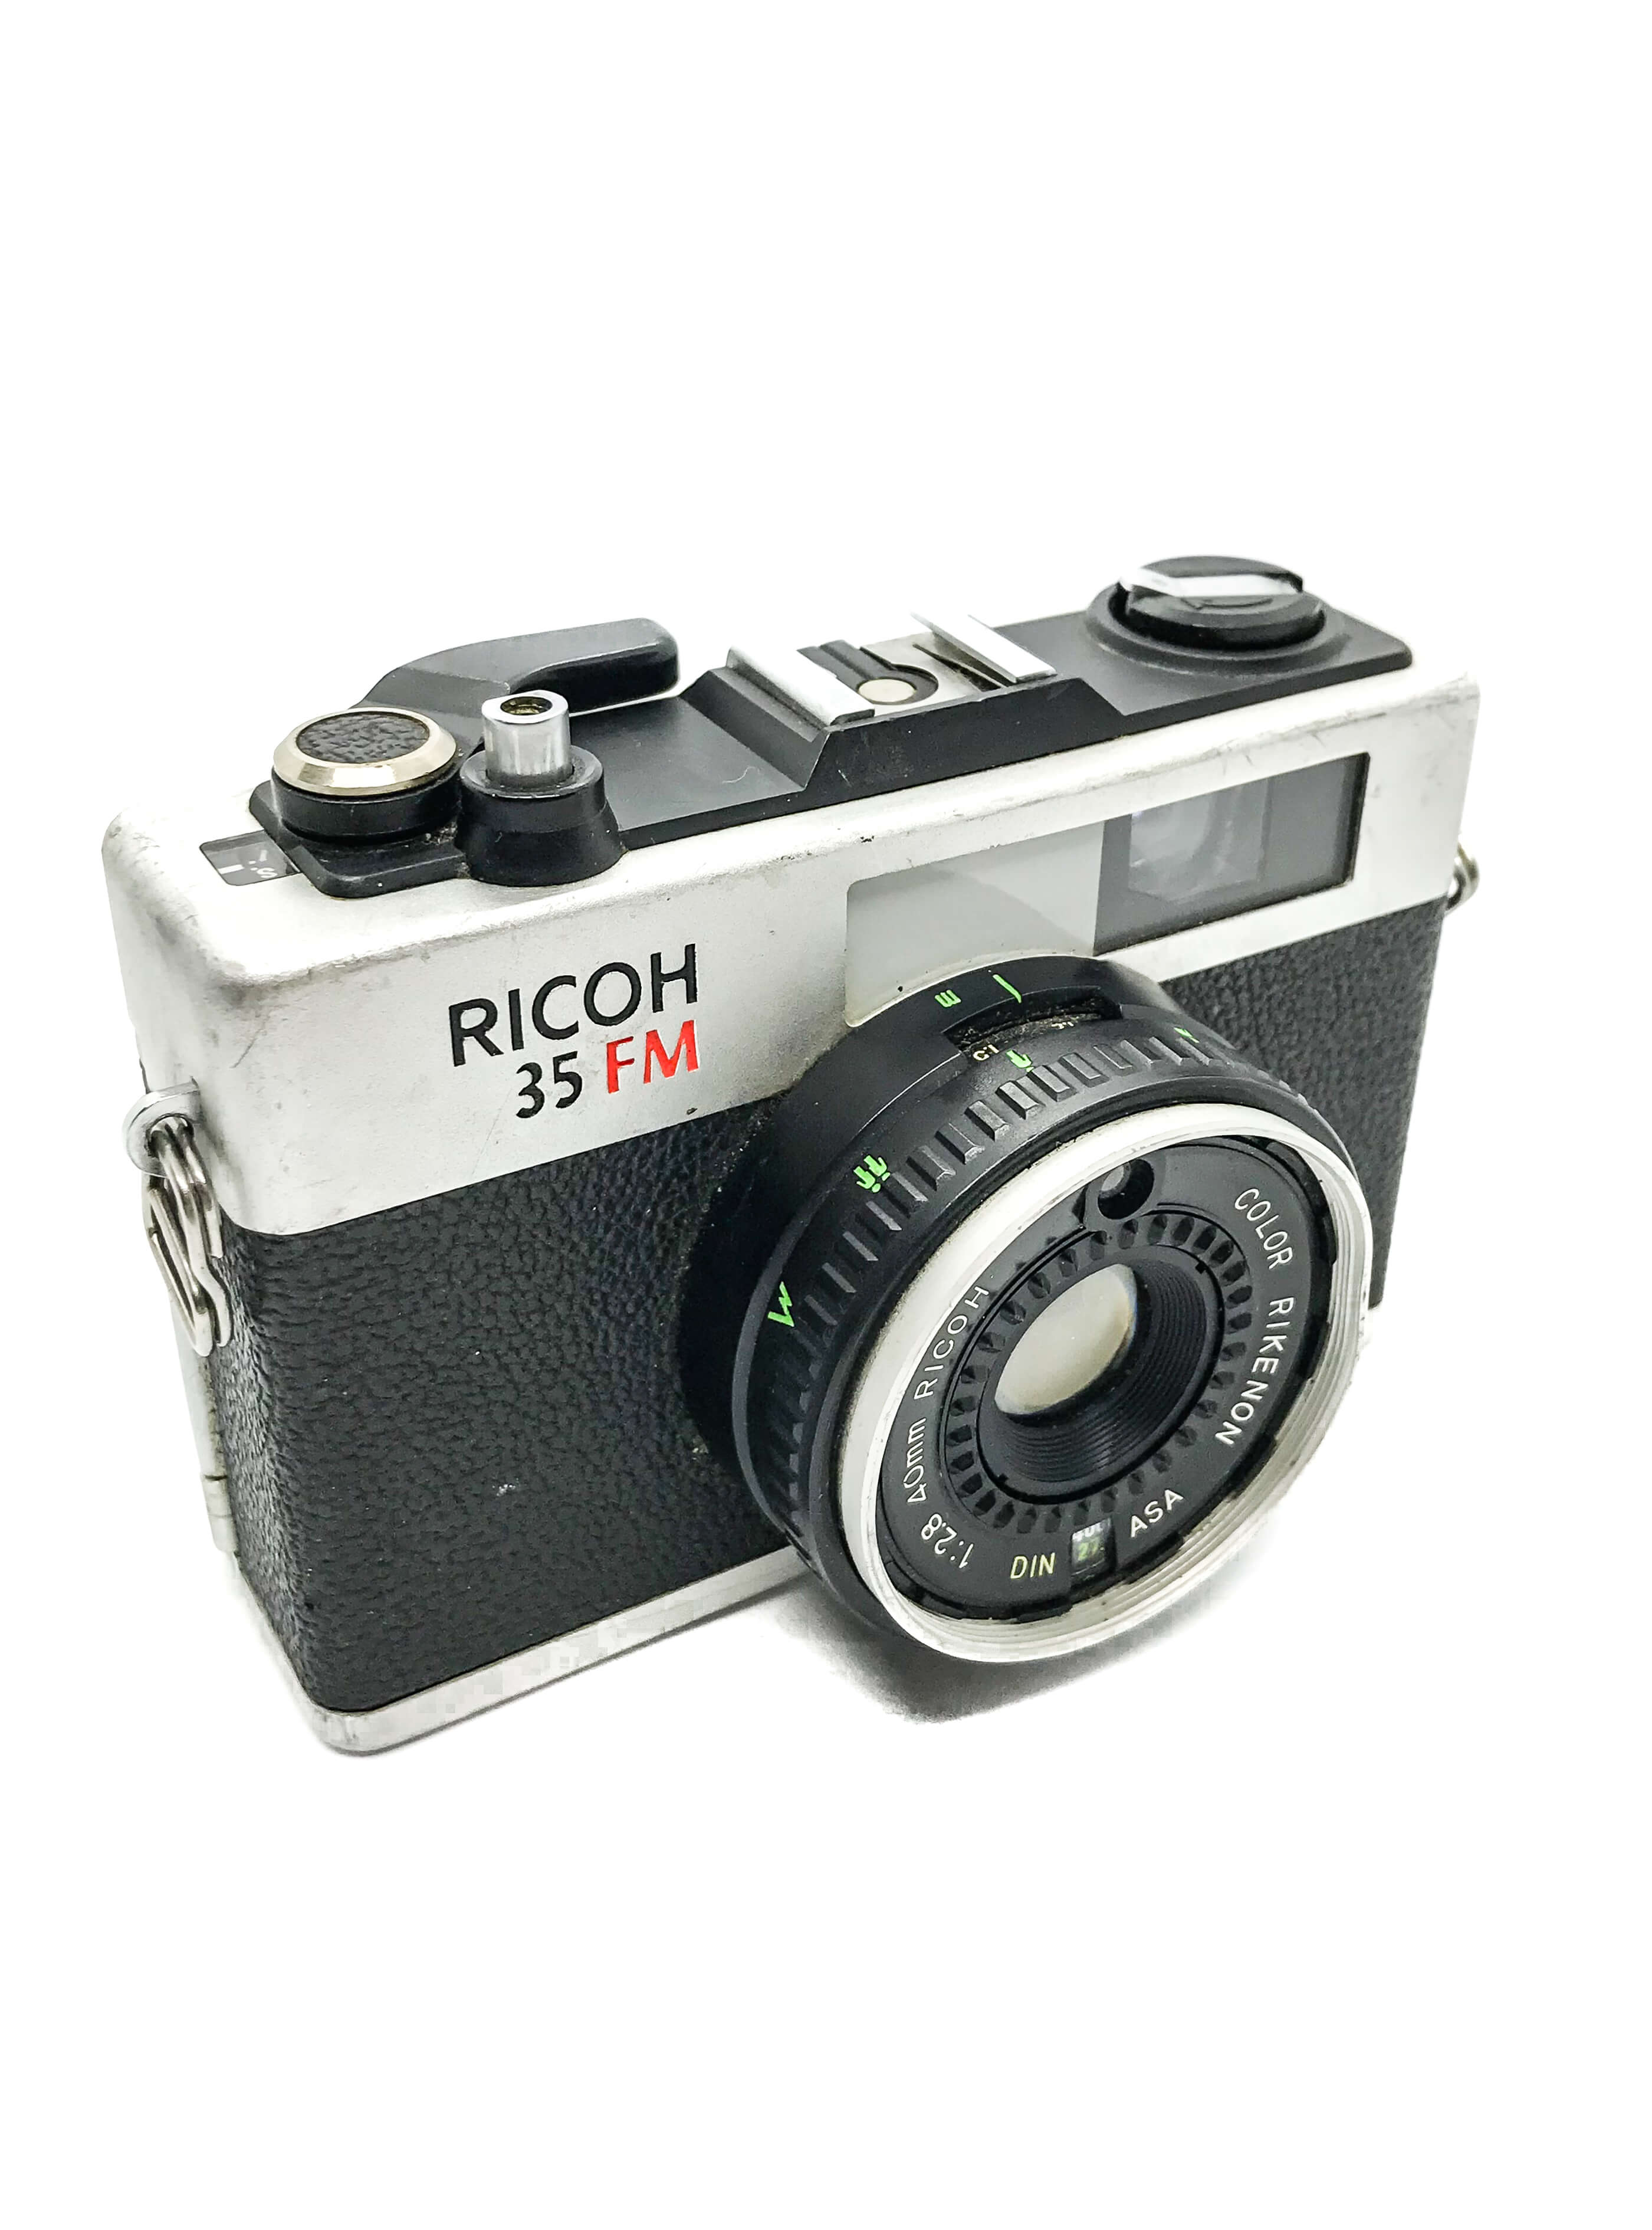 Richoh 35mm camera on white background